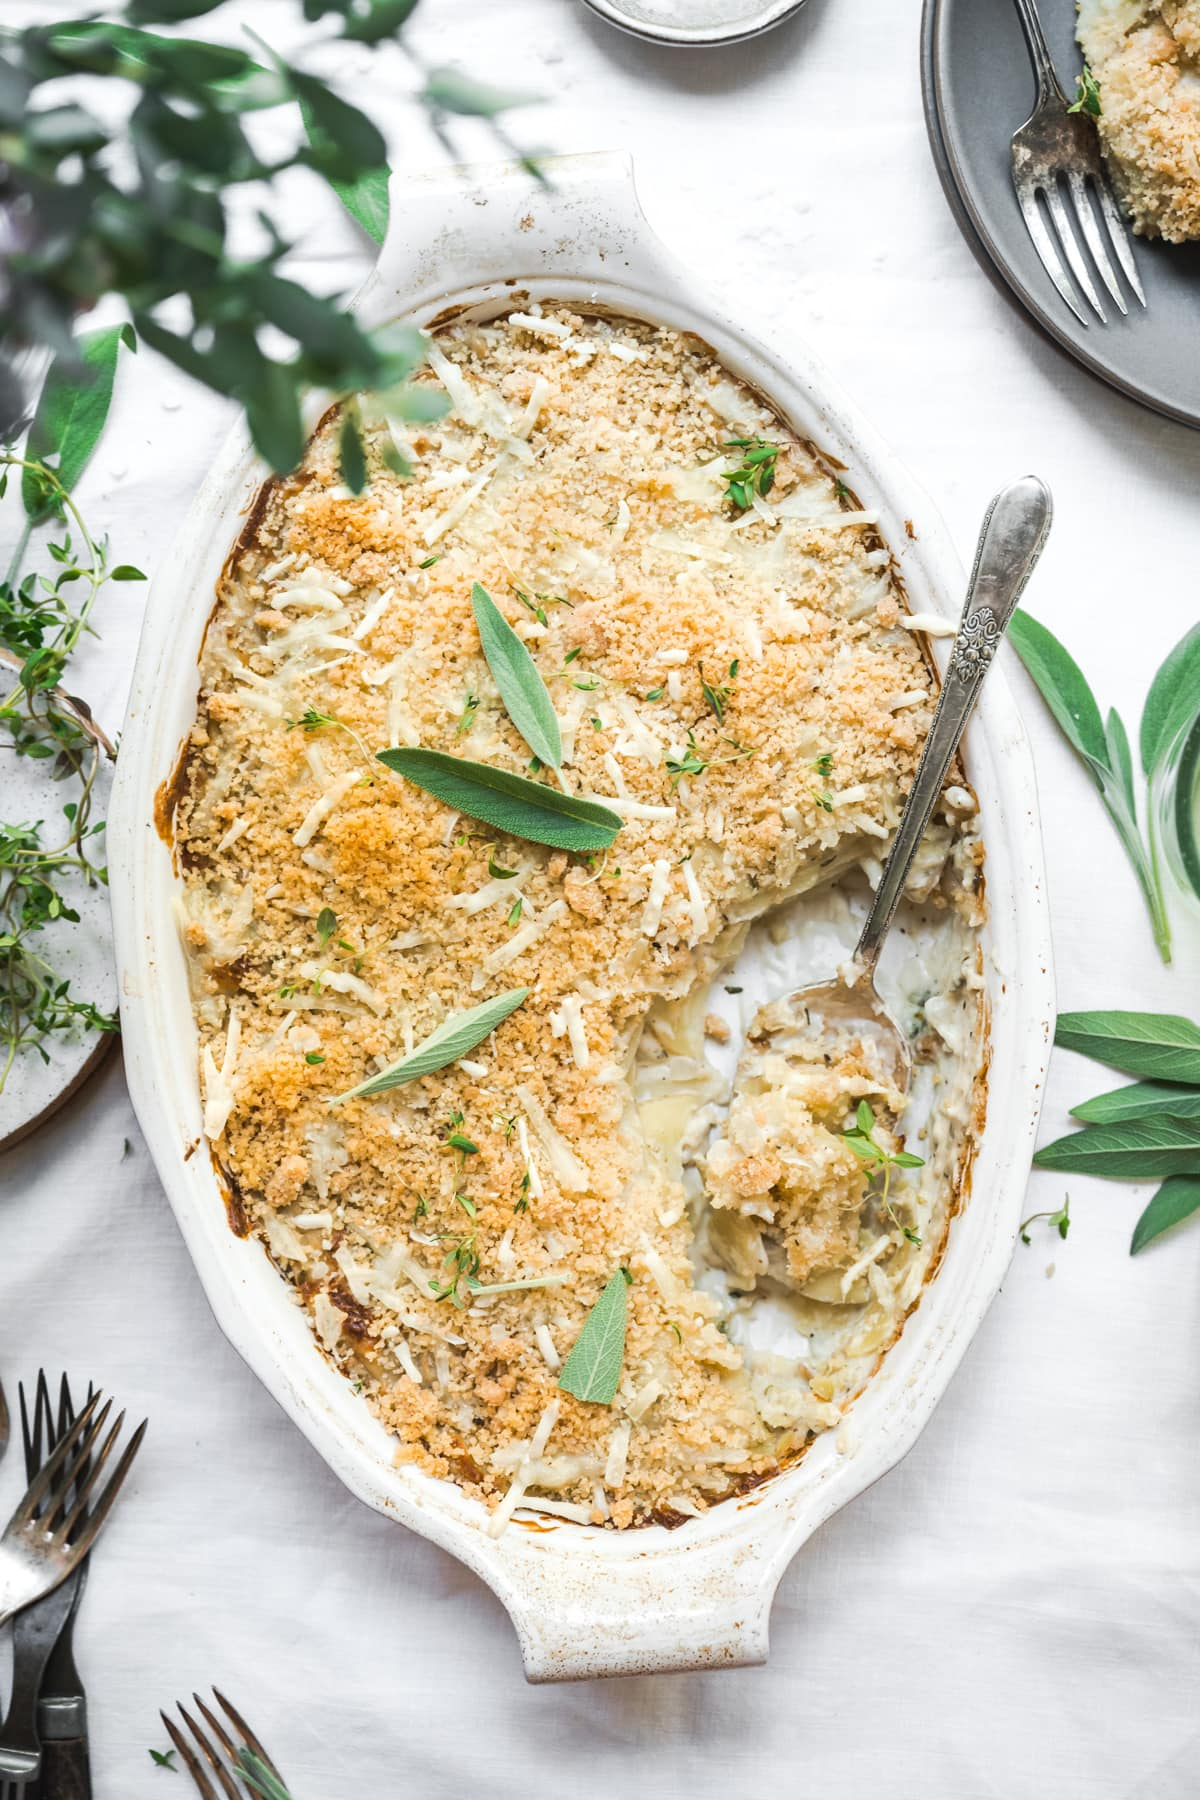 overhead view of vegan scalloped potatoes with breadcrumb topping in a casserole dish on white linen tablecloth.